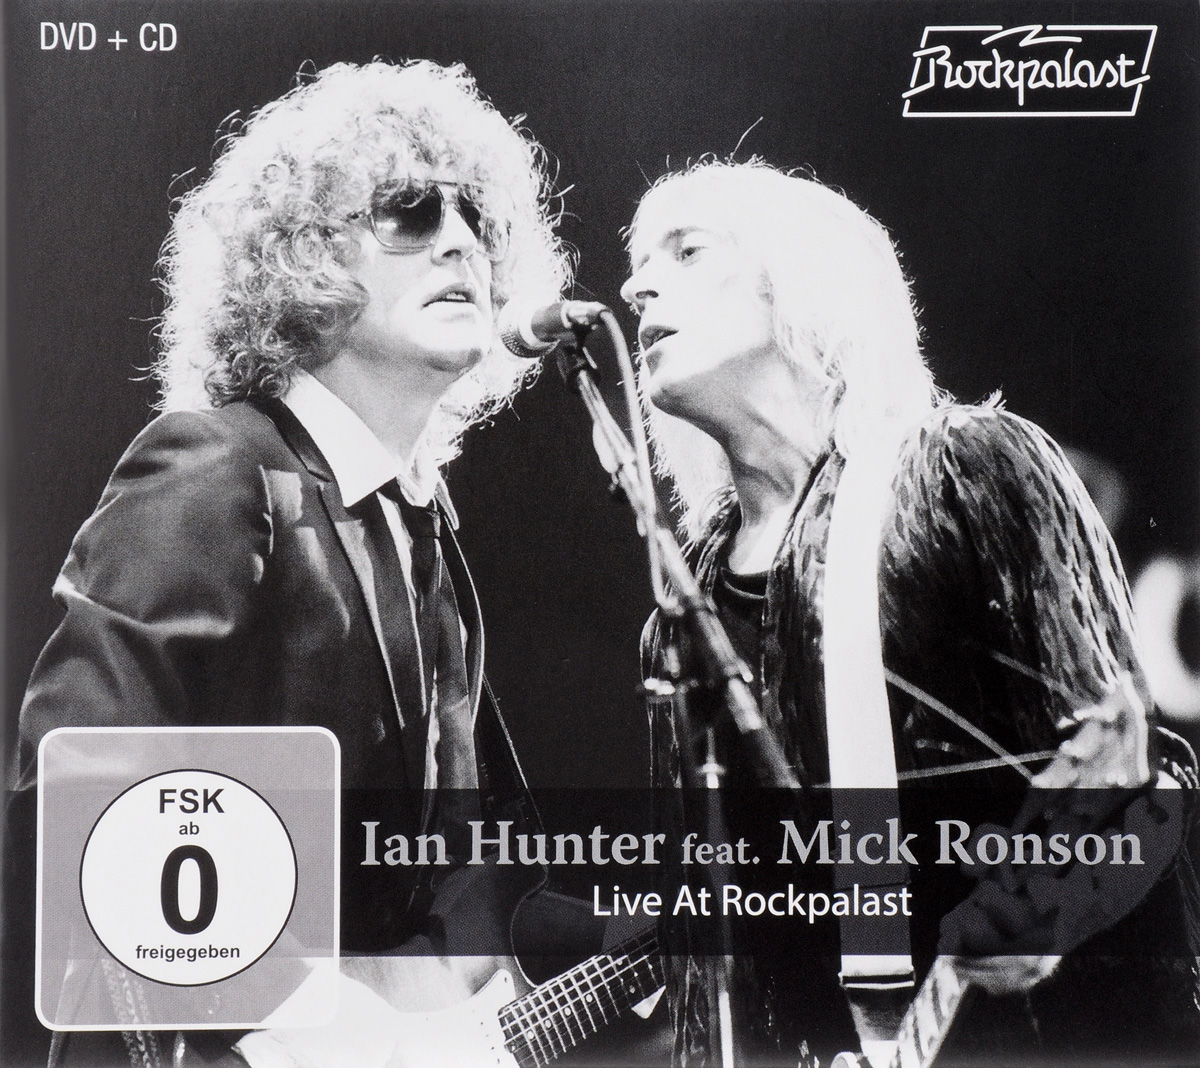 Ian Hunter Feat. Mick Ronson: Live At Rockpalast (DVD + CD) цена